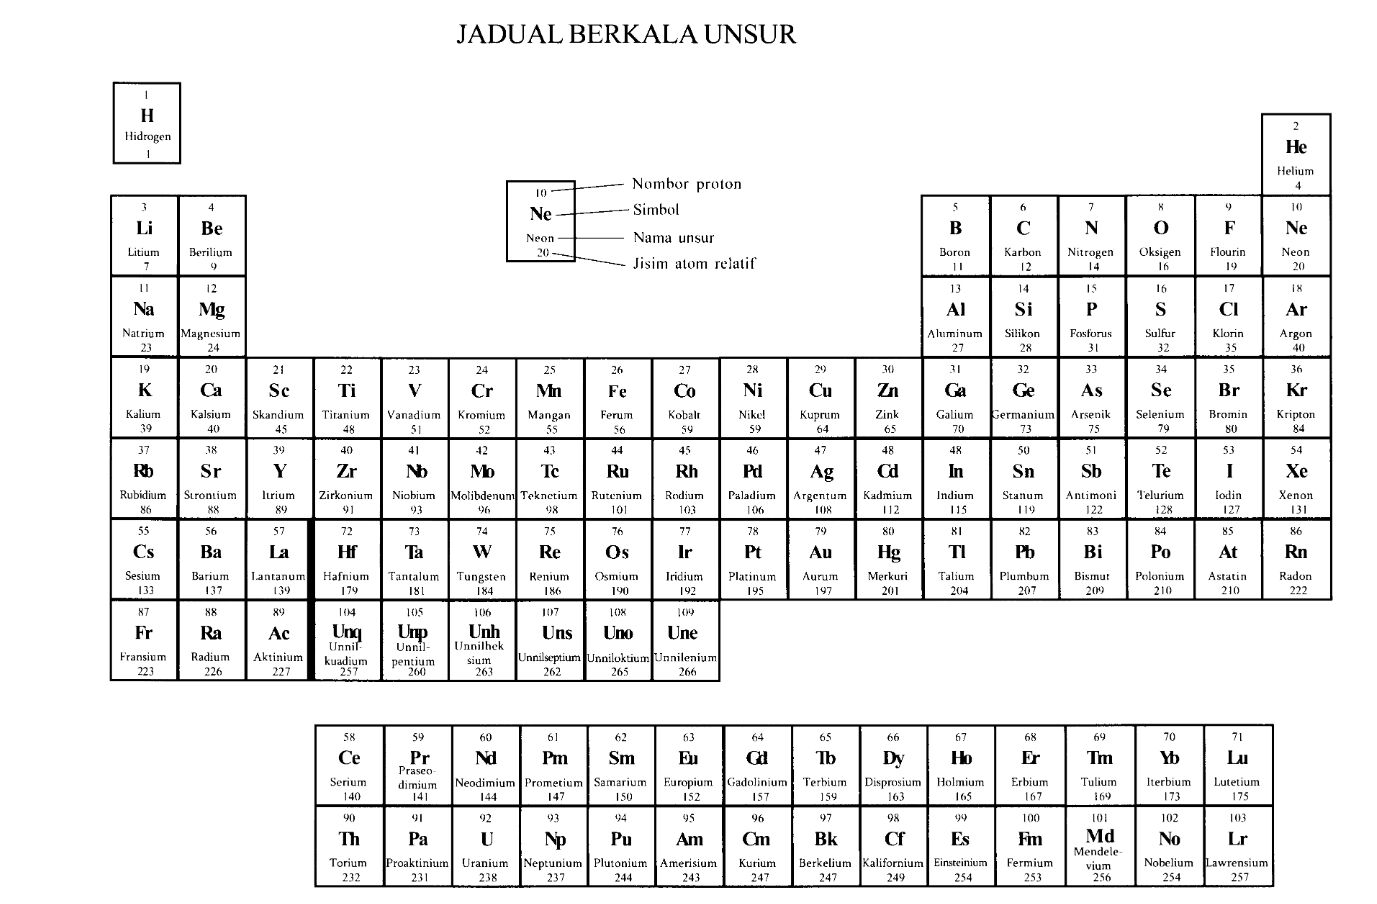 Periodic table in arabic choice image periodic table images jadual berkala malaysia periodic table of the elements click for malay periodic table in arabic script gamestrikefo Image collections